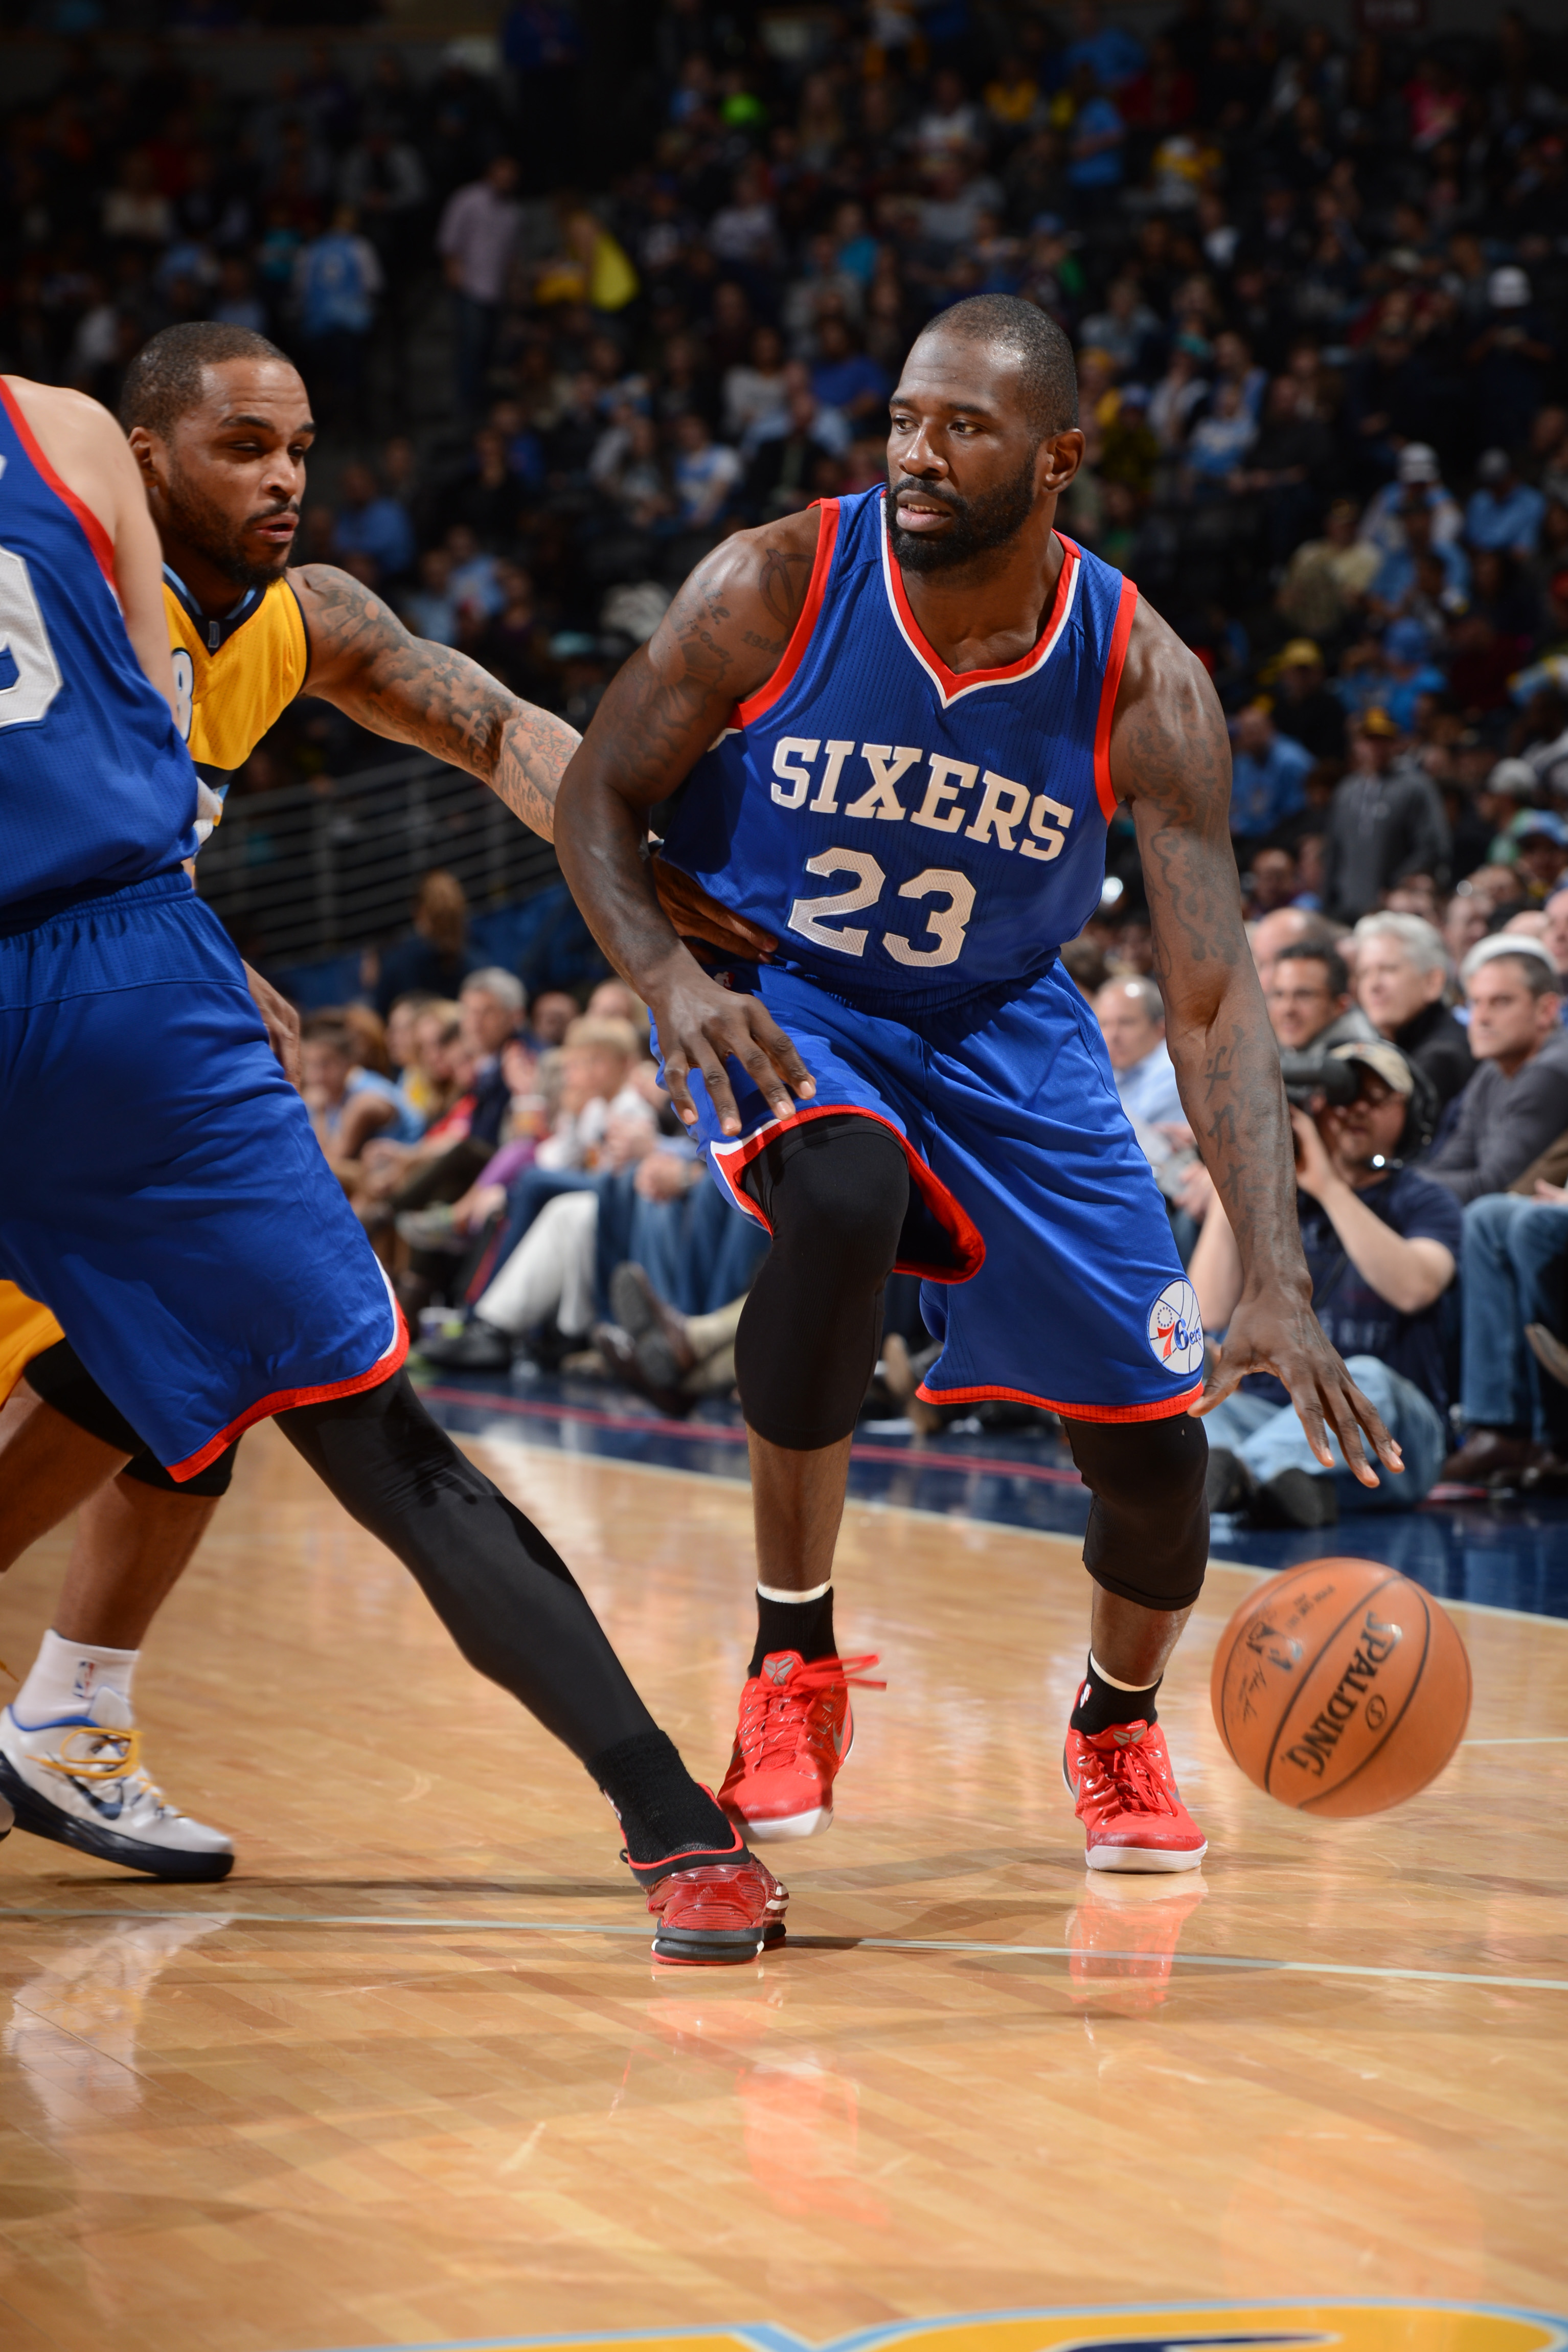 DENVER, CO - MARCH 25: Jason Richardson #23 of the Philadelphia 76ers handles the ball against the Denver Nuggets on March 25, 2015 at the Pepsi Center in Denver, Colorado. (Photo by Garrett W. Ellwood/NBAE via Getty Images)